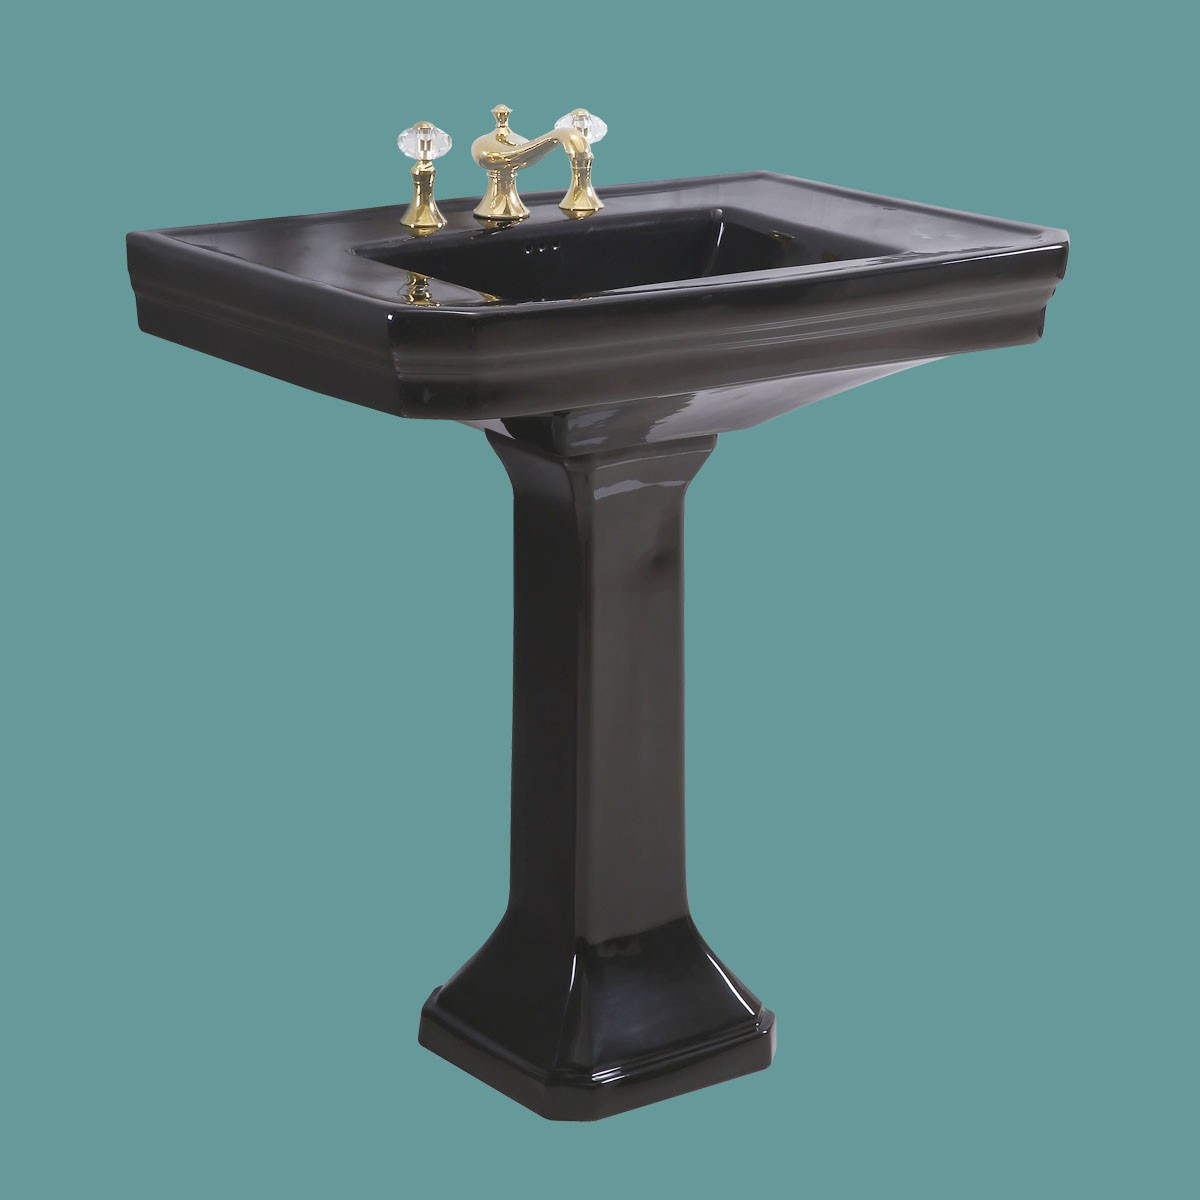 Large Black Victorian Widespread Bathroom Pedestal Sink